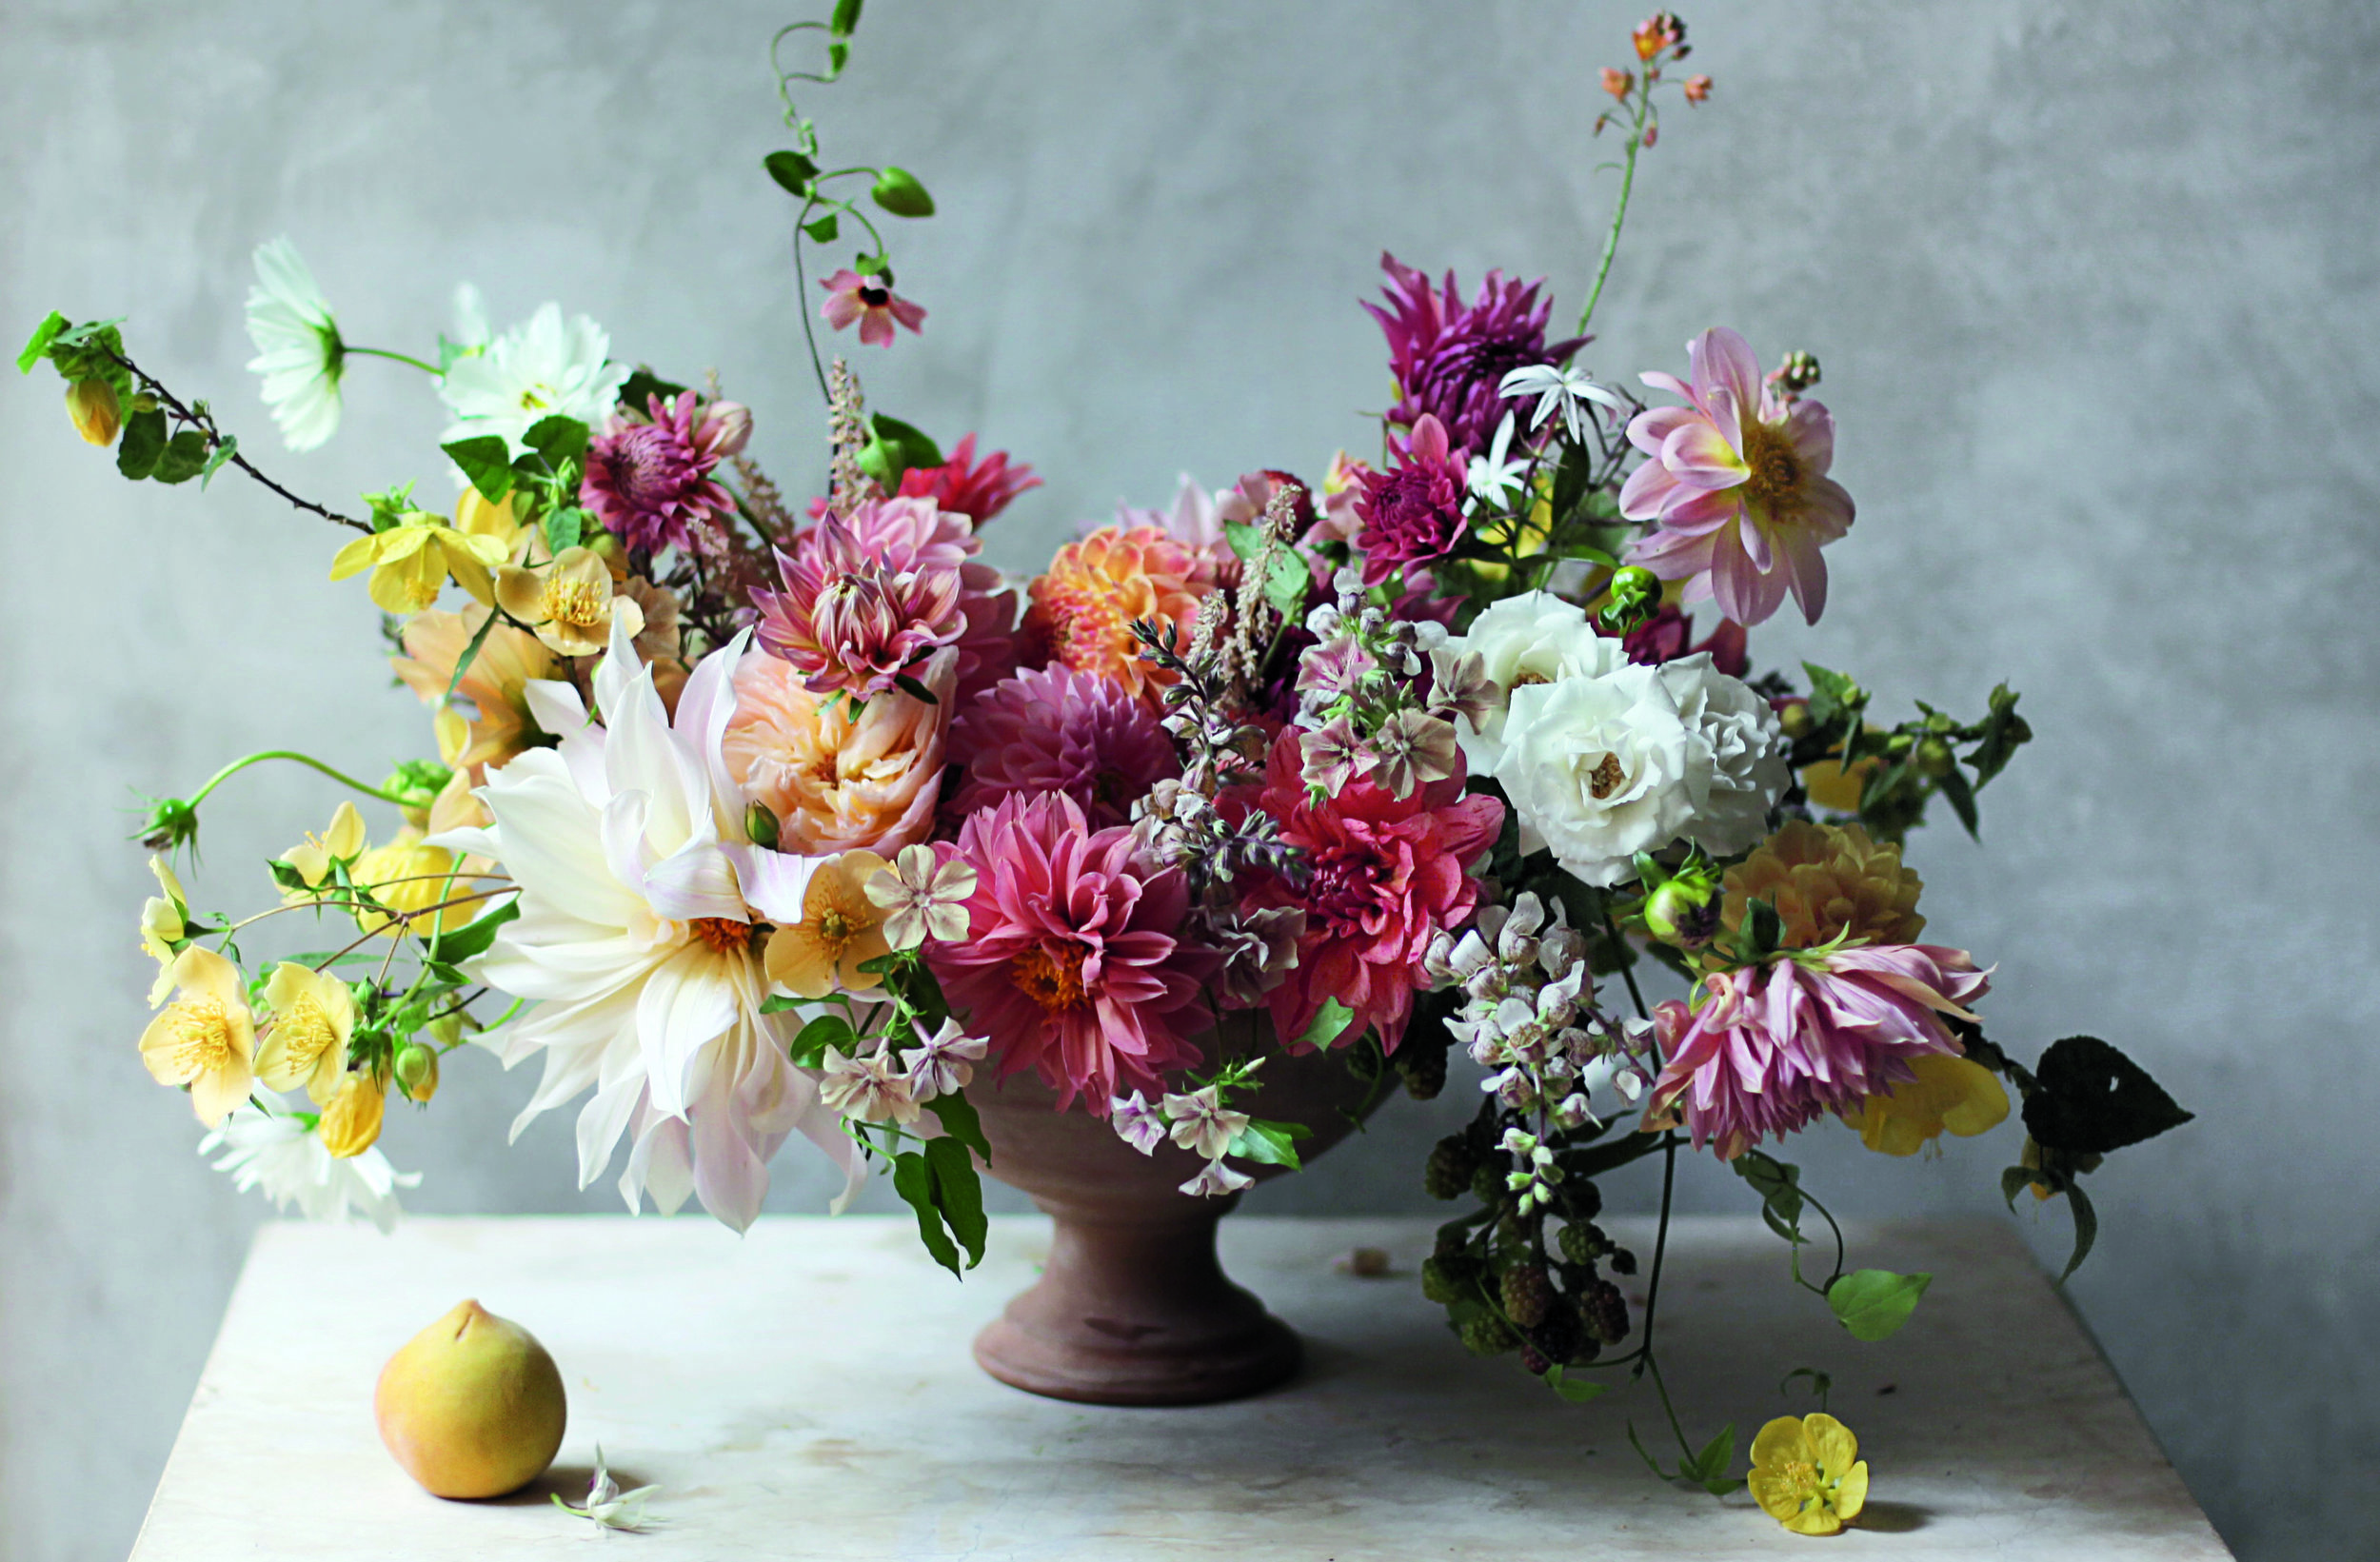 Above: La Musa de las Flores (Gabriela Salazar, Valle de Bravo, Mexico): Centrepiece using dahlias from La Musa's garden. Courtesy La Musa de las Flores. Below: Petalon (Florence Kennedy, London): hanging arrangement made with students at a Petalon workshop, using lavatera seed pods, smoke bush, hydrangea 'Limelight' and 'Kyushu', and hellebore 'Winterbells'. Picture courtesy of Petalon; Matagalán Plantae (Carolina Spencer, Barcelona): from the 'Totem' series, 2017, vase by Matagalán with anthurium, agapanthus, alliums, echinacea, calathea leaf and red-hot pokers. Picture credit: courtesy Matagalán Plantae/ Florencia Lucia; Frida Kim Flowers (Frida Kim, London): Dancing buttercup flowers with Solomon's seal. Picture: courtesy Frida Kim Flowers; Aesme (Jess Lister and Alex Nutting, London and Hampshire): tablescape using May flowers, including aquilegias, pansies, forget-me-nots, geums, alliums and pale clematis. Picture courtesy of Aesme.